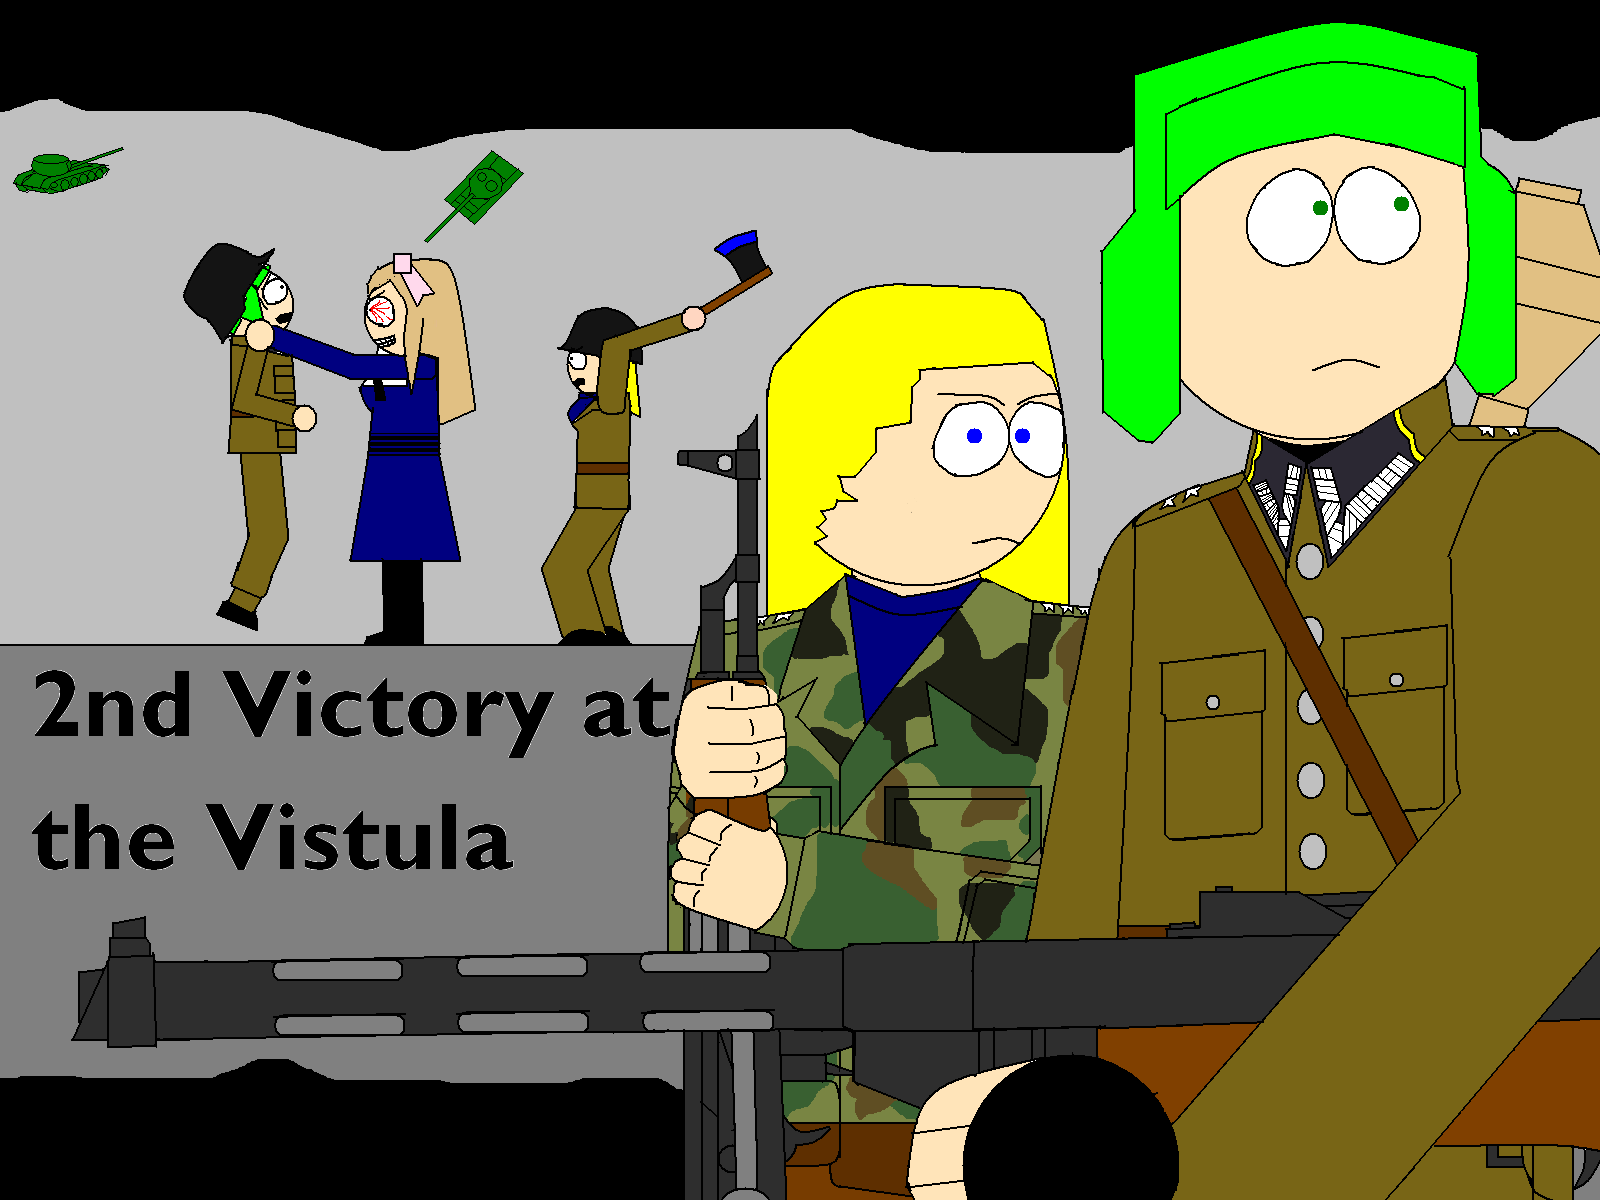 2nd Victory at the Vistula